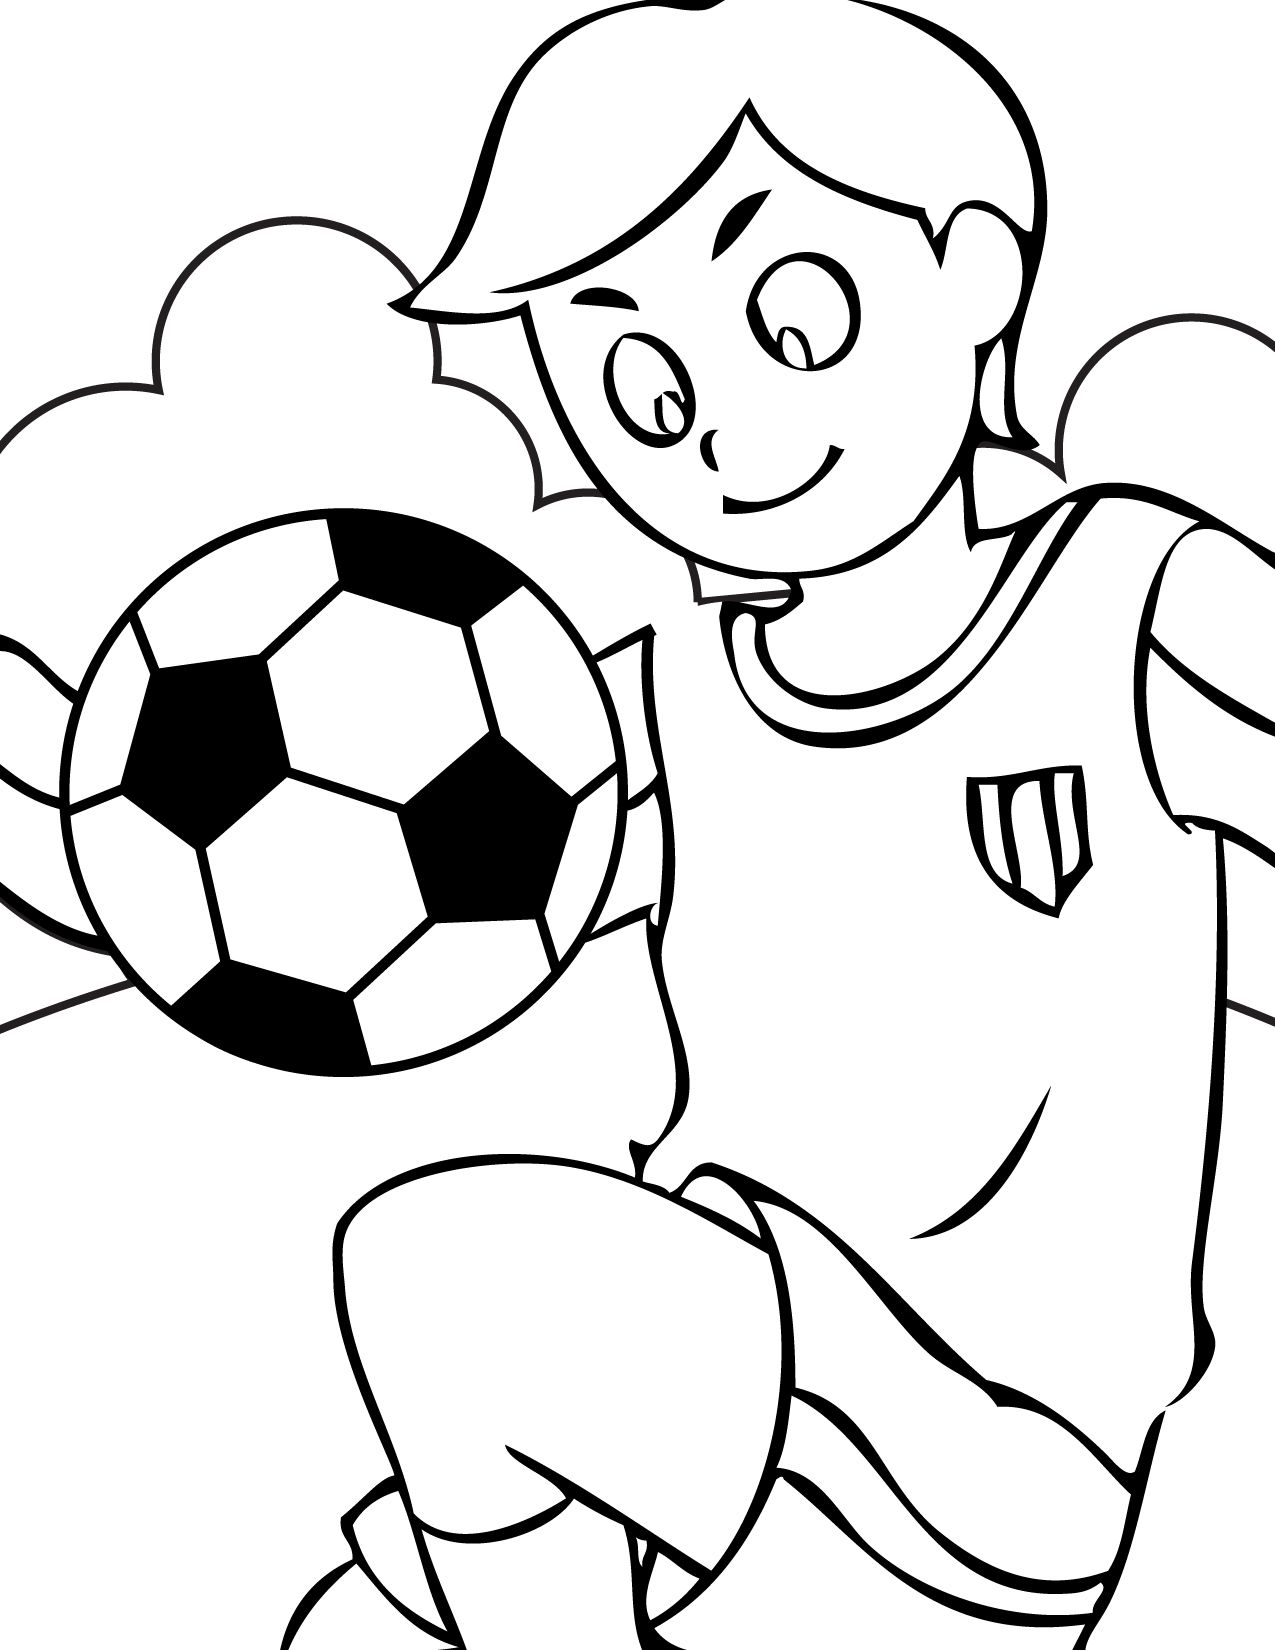 image about Free Printable Sports Coloring Pages named Free of charge Printable Sports activities Coloring Webpages For Young children sports activities